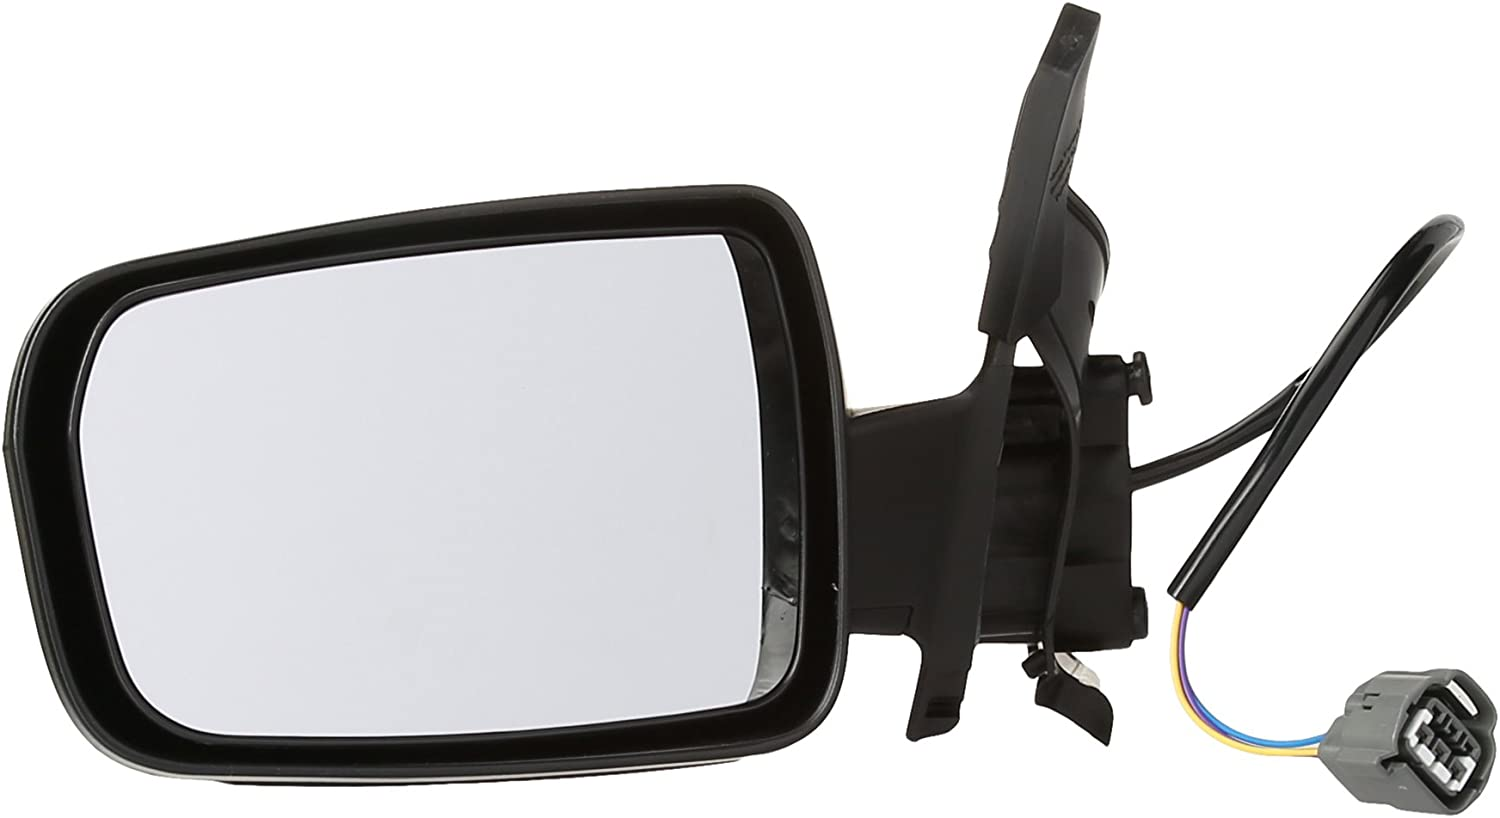 Power Textured Black Passenger Right Side Mirror for 2004-2012 Mitsubishi Galant